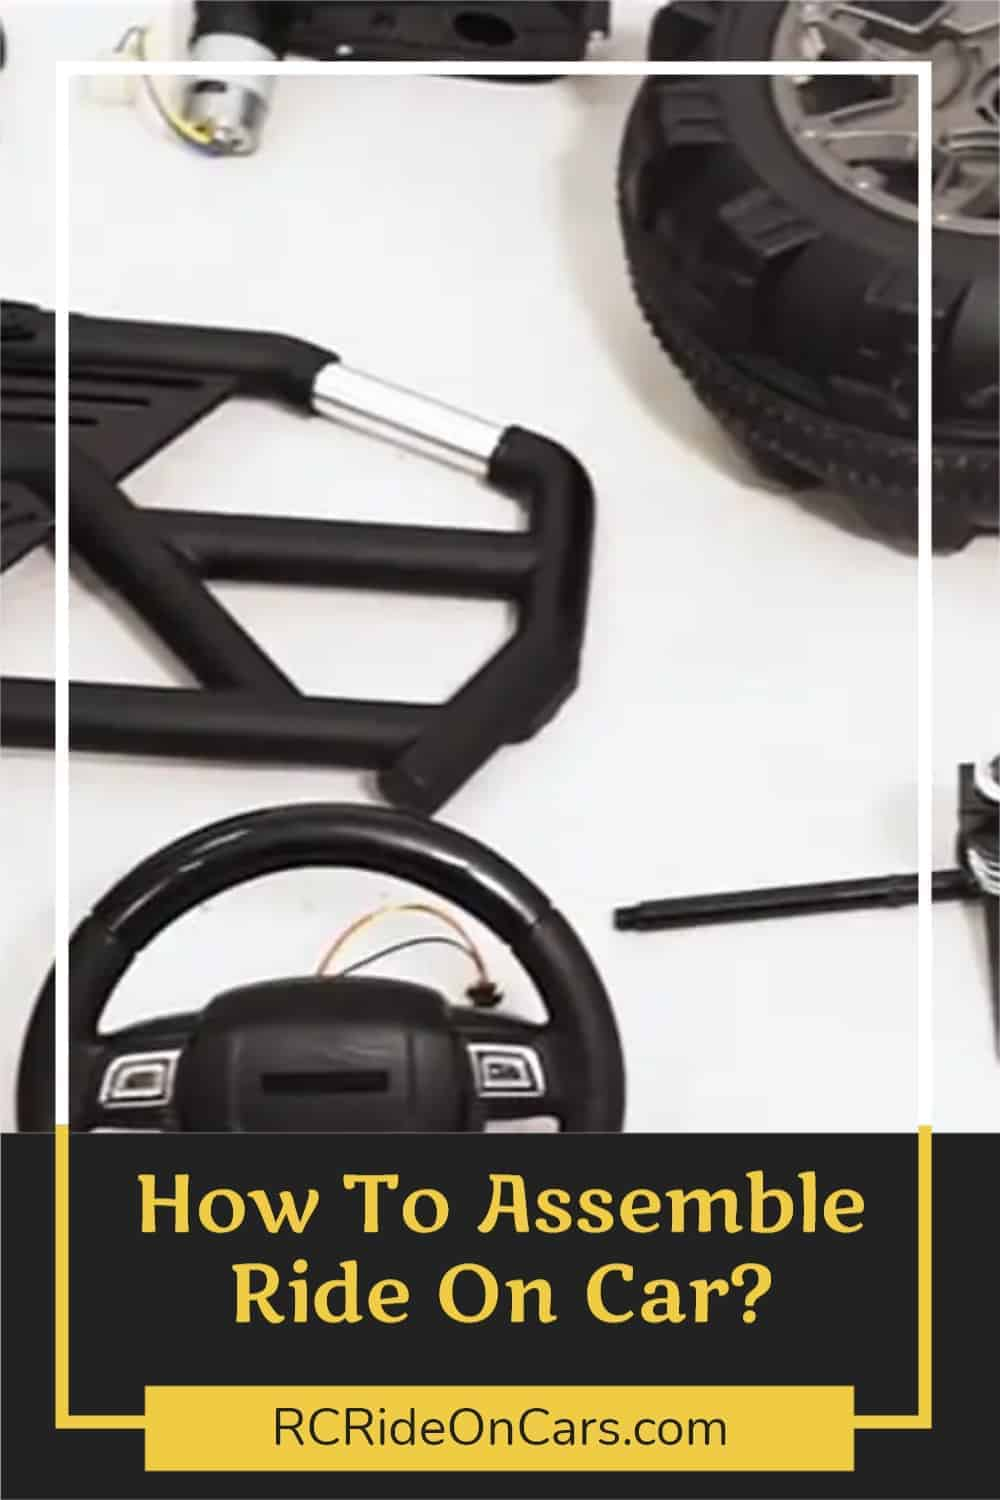 How To Assemble Ride On Car